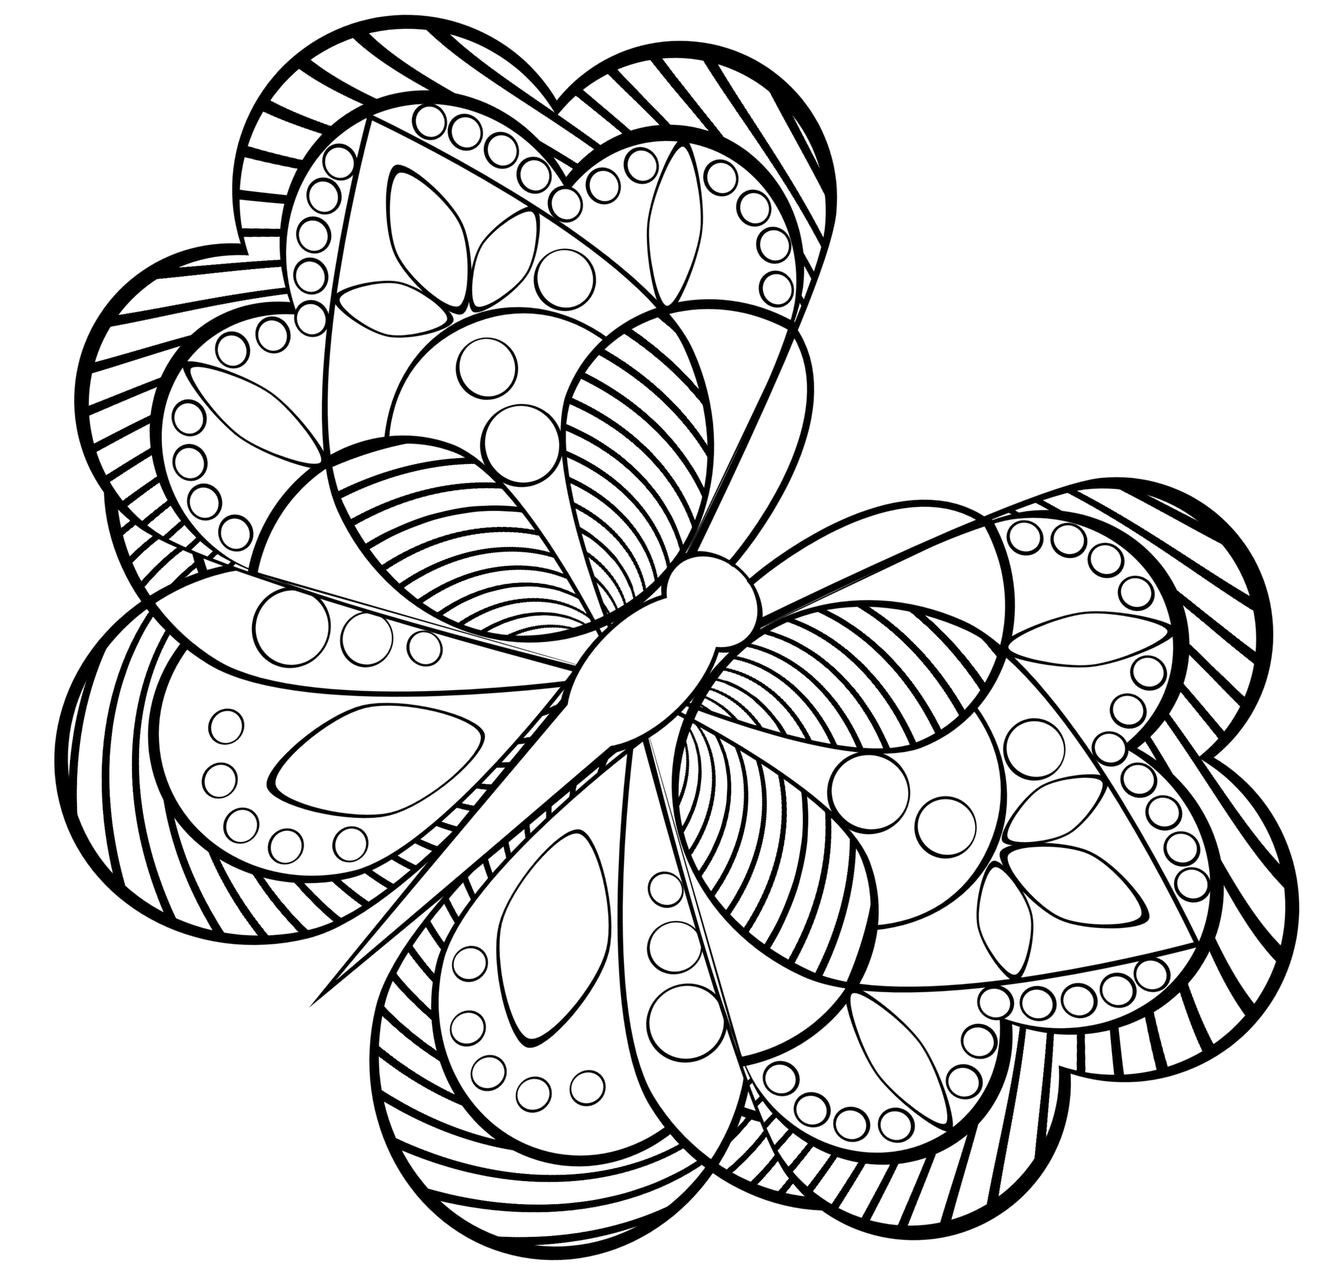 free mosaic patterns to color mosaic patterns coloring pages coloring home free color patterns to mosaic